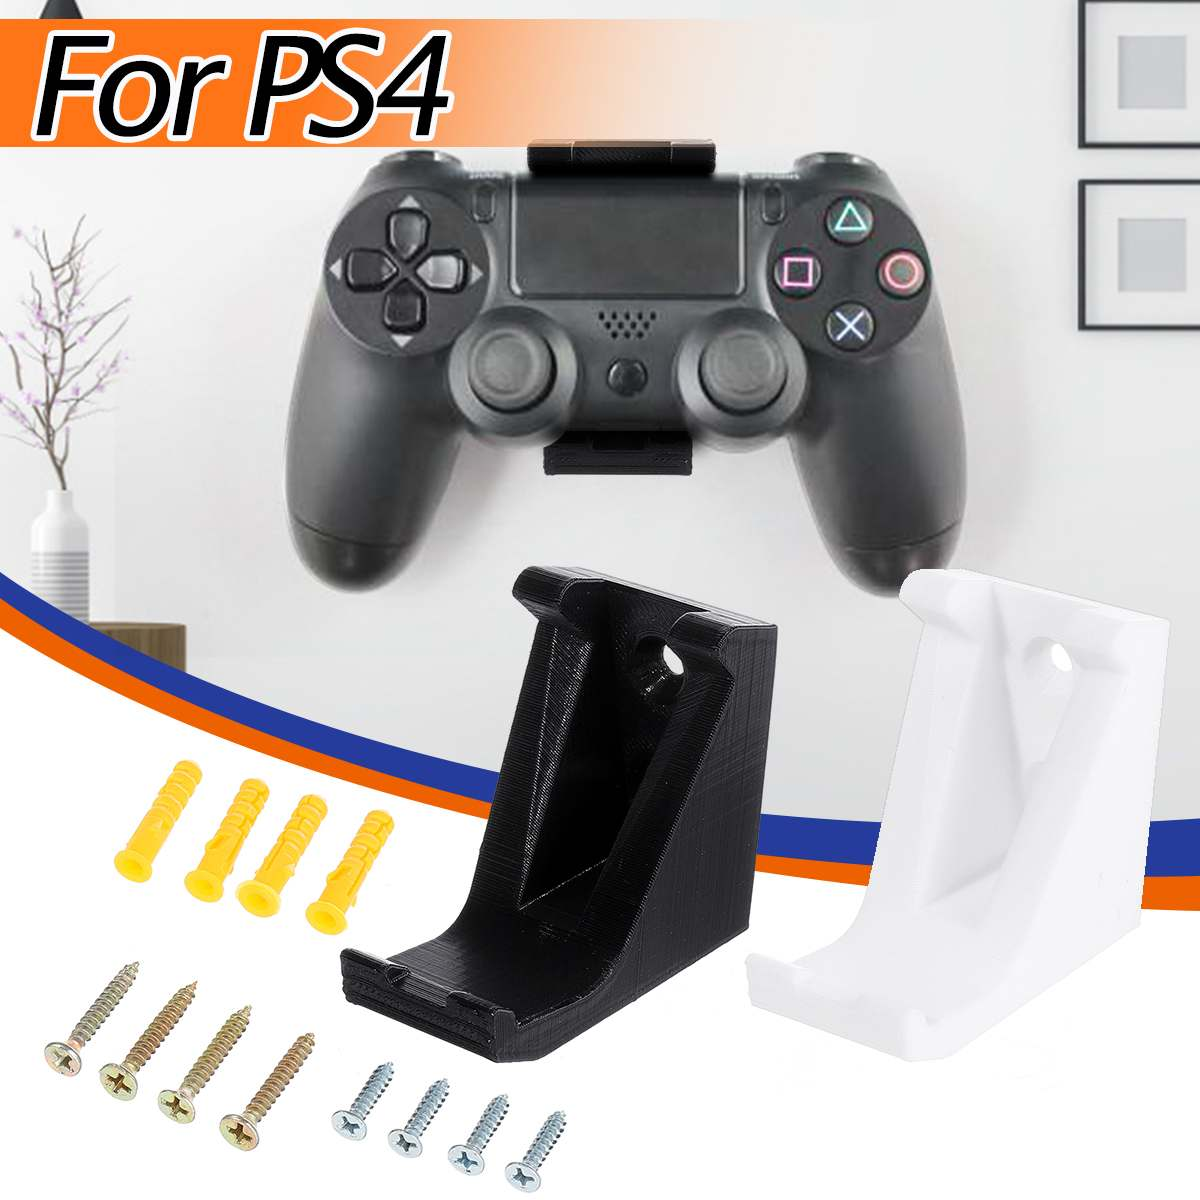 White/ Black Wall Holder For PS4 For Playstation 4 Controller Game Pad Dock Gamepad Stand Holder 3D Printed With Screws